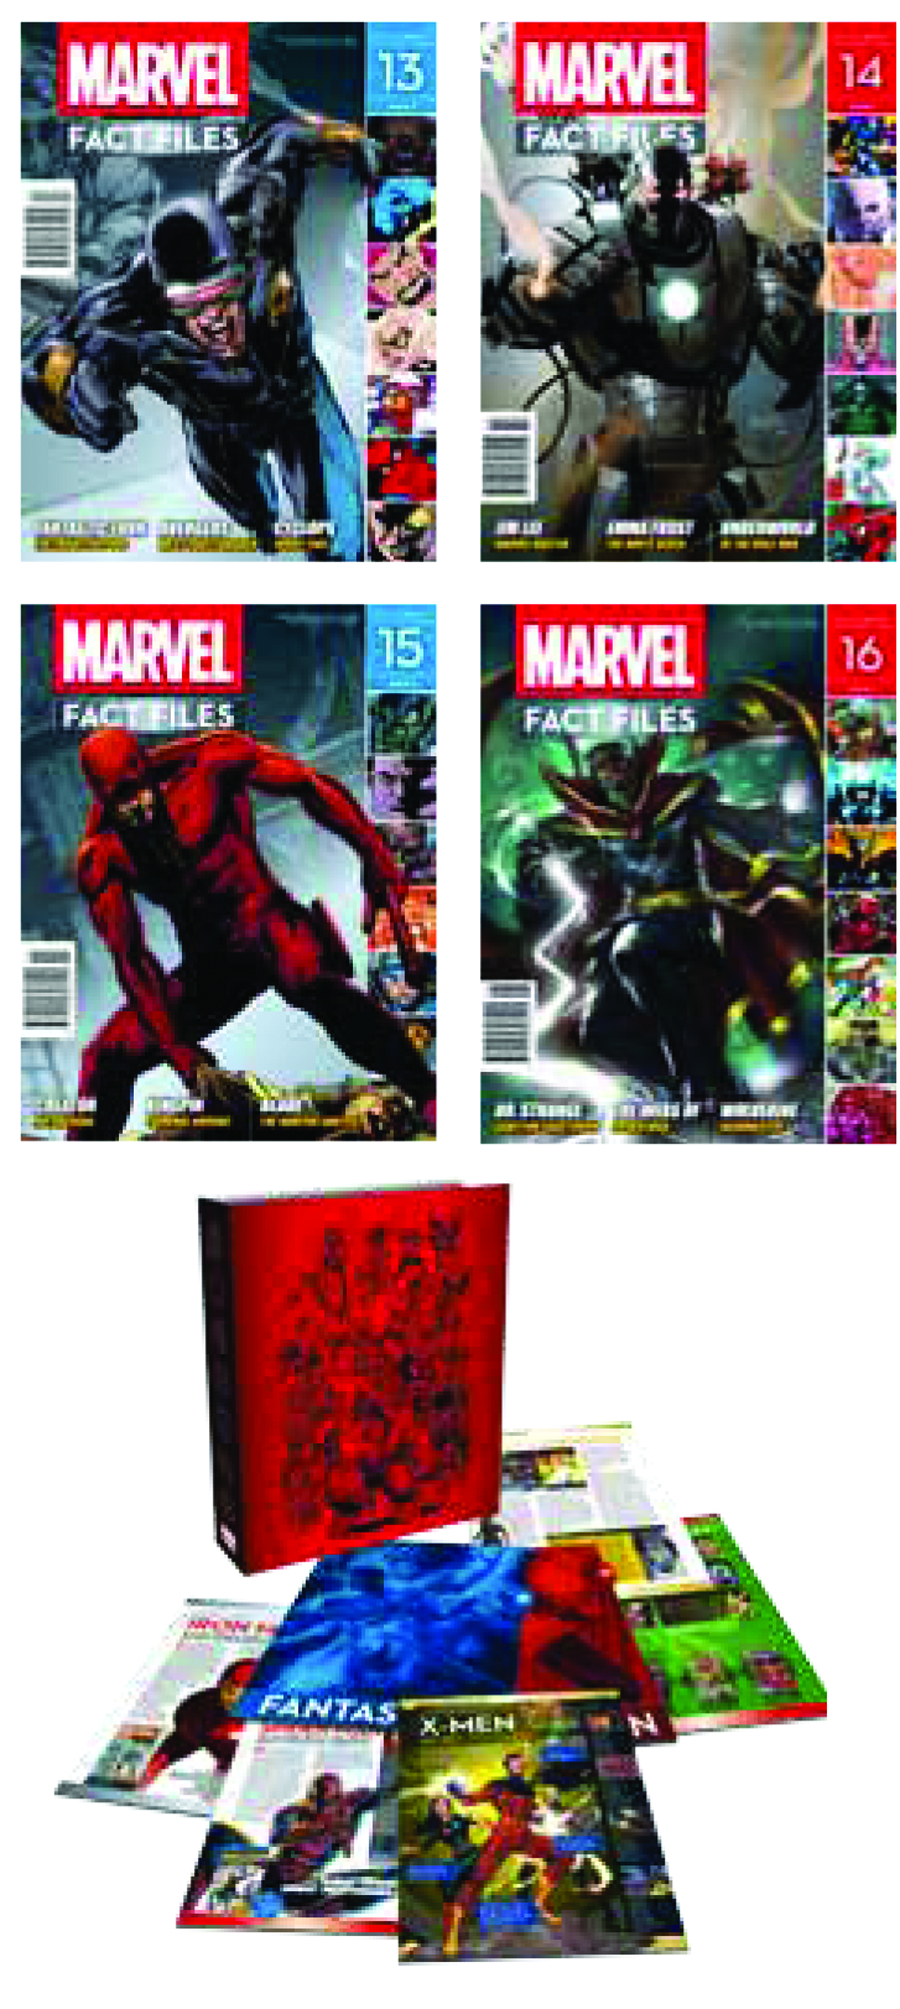 MARVEL FACT FILES #15 DAREDEVIL COVER